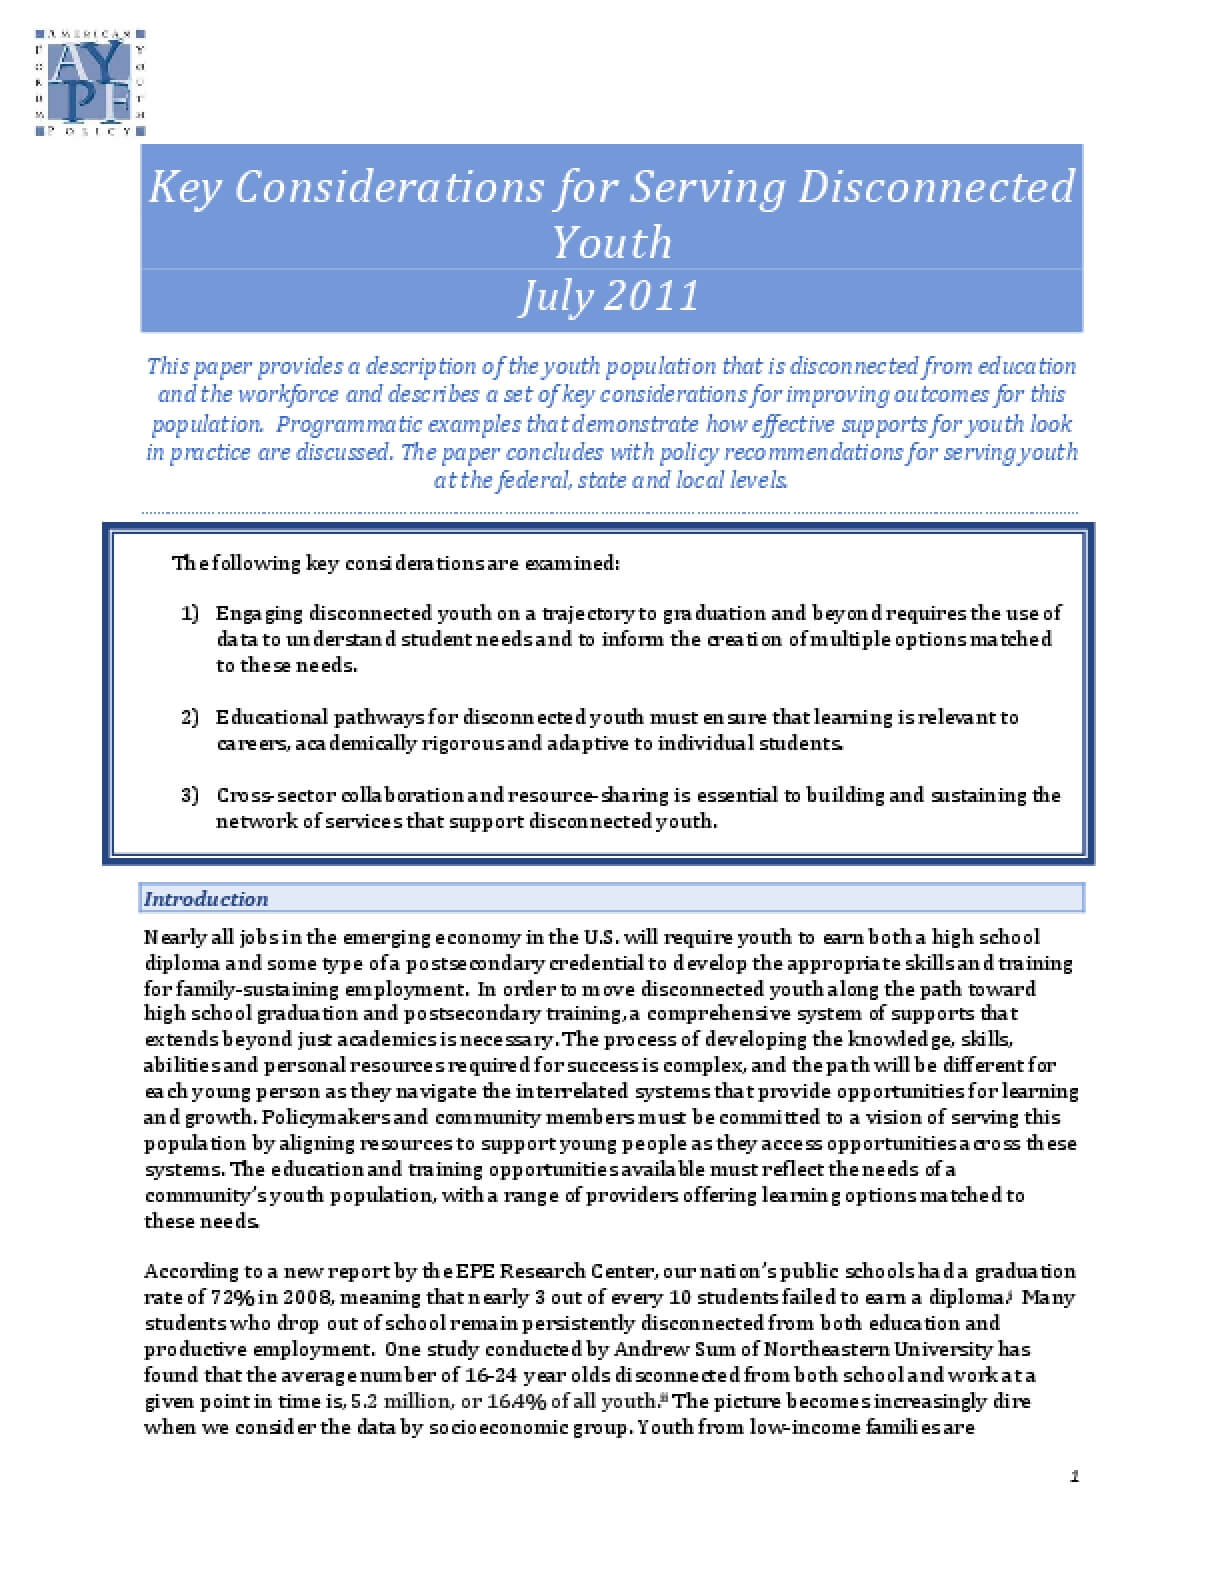 Key Considerations for Serving Disconnected Youth, July 2011